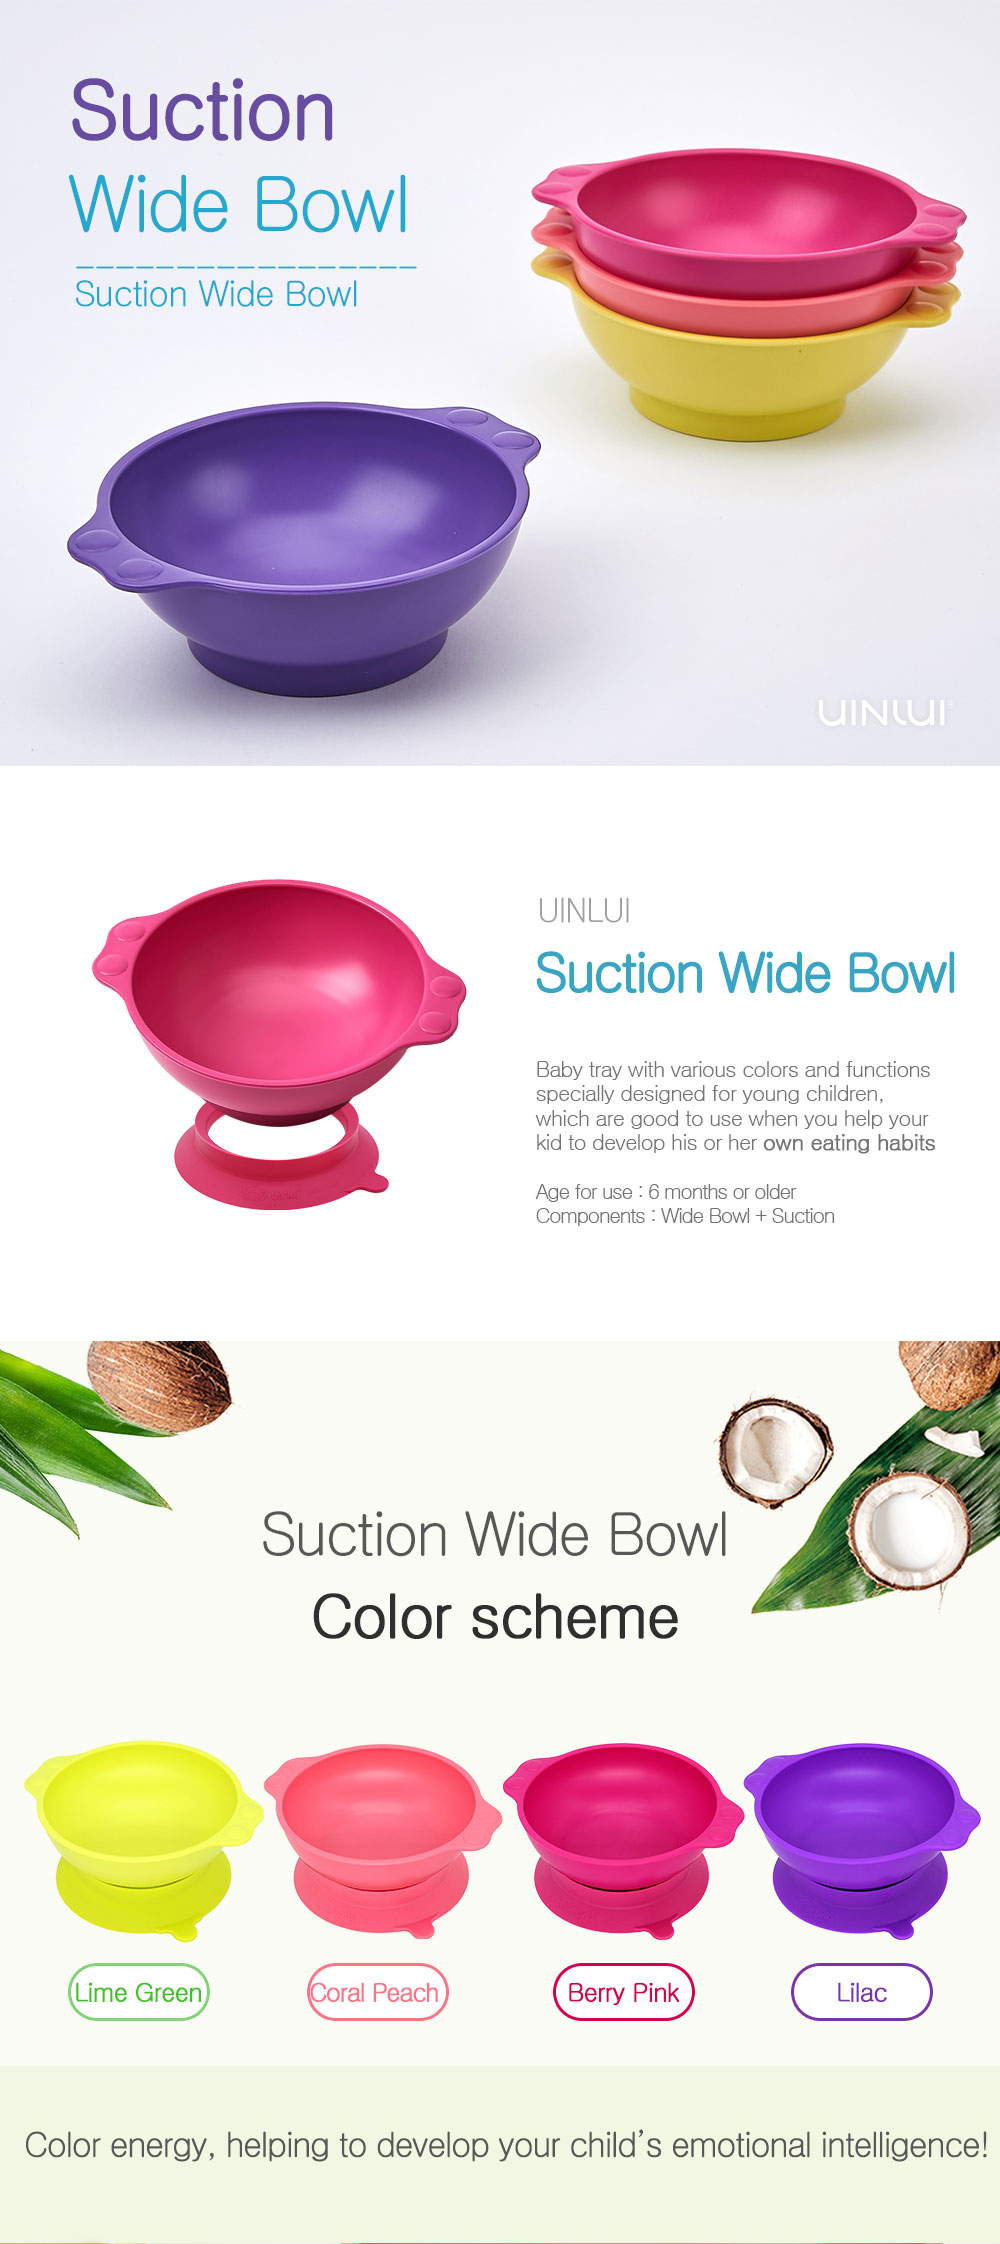 Suction Wide Bowl